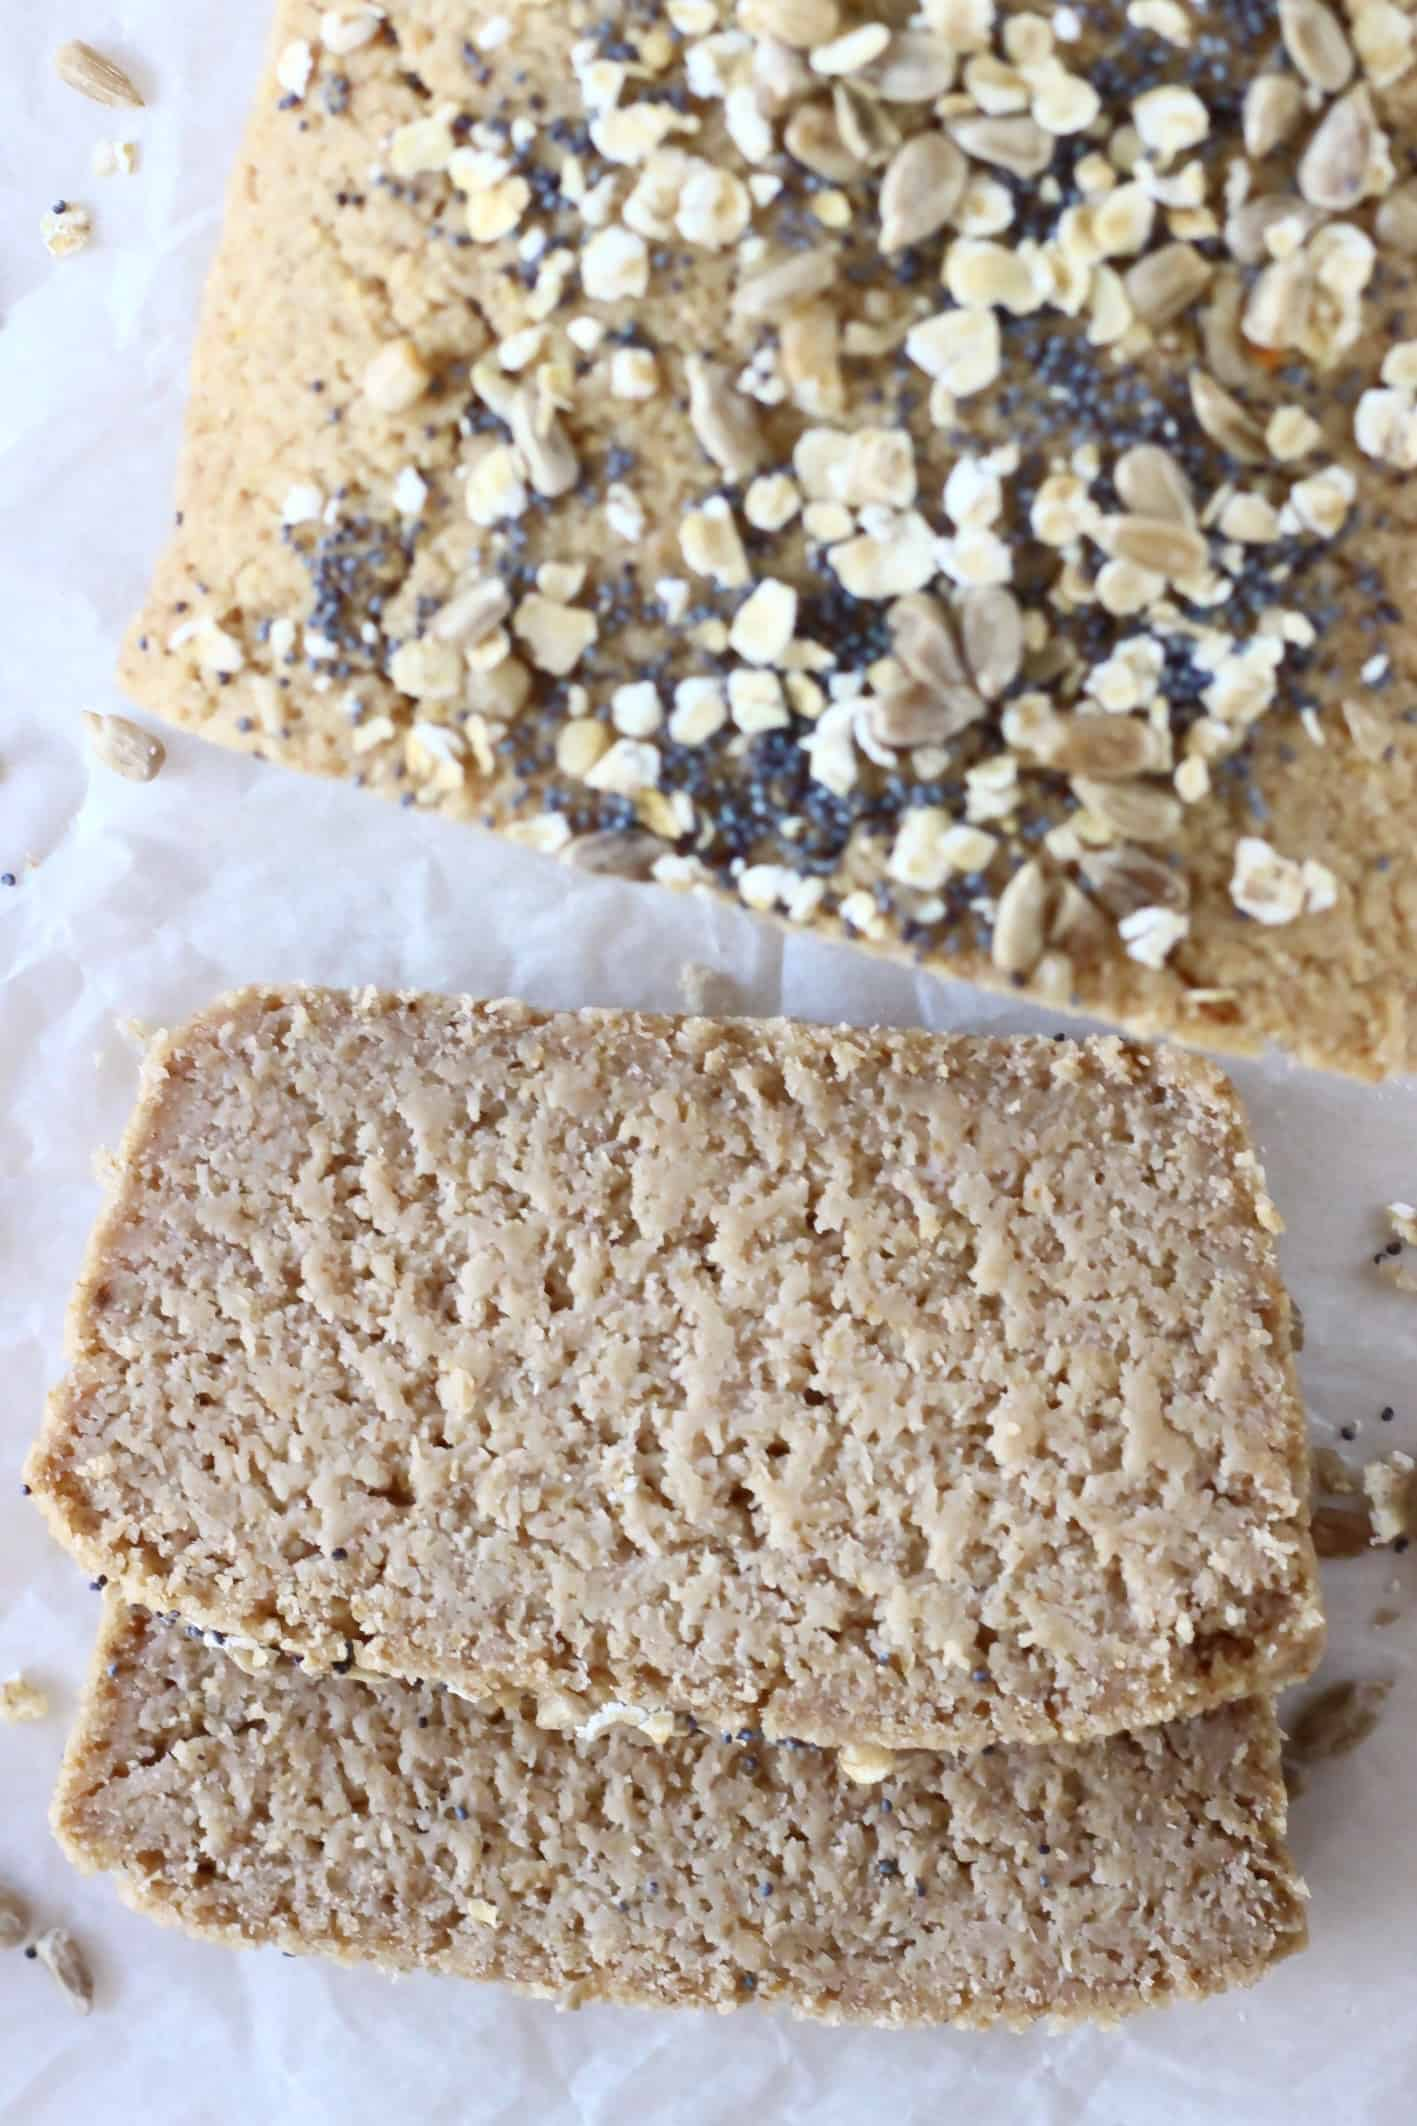 A loaf of oat flour bread topped with oats and seeds with two slices next to it